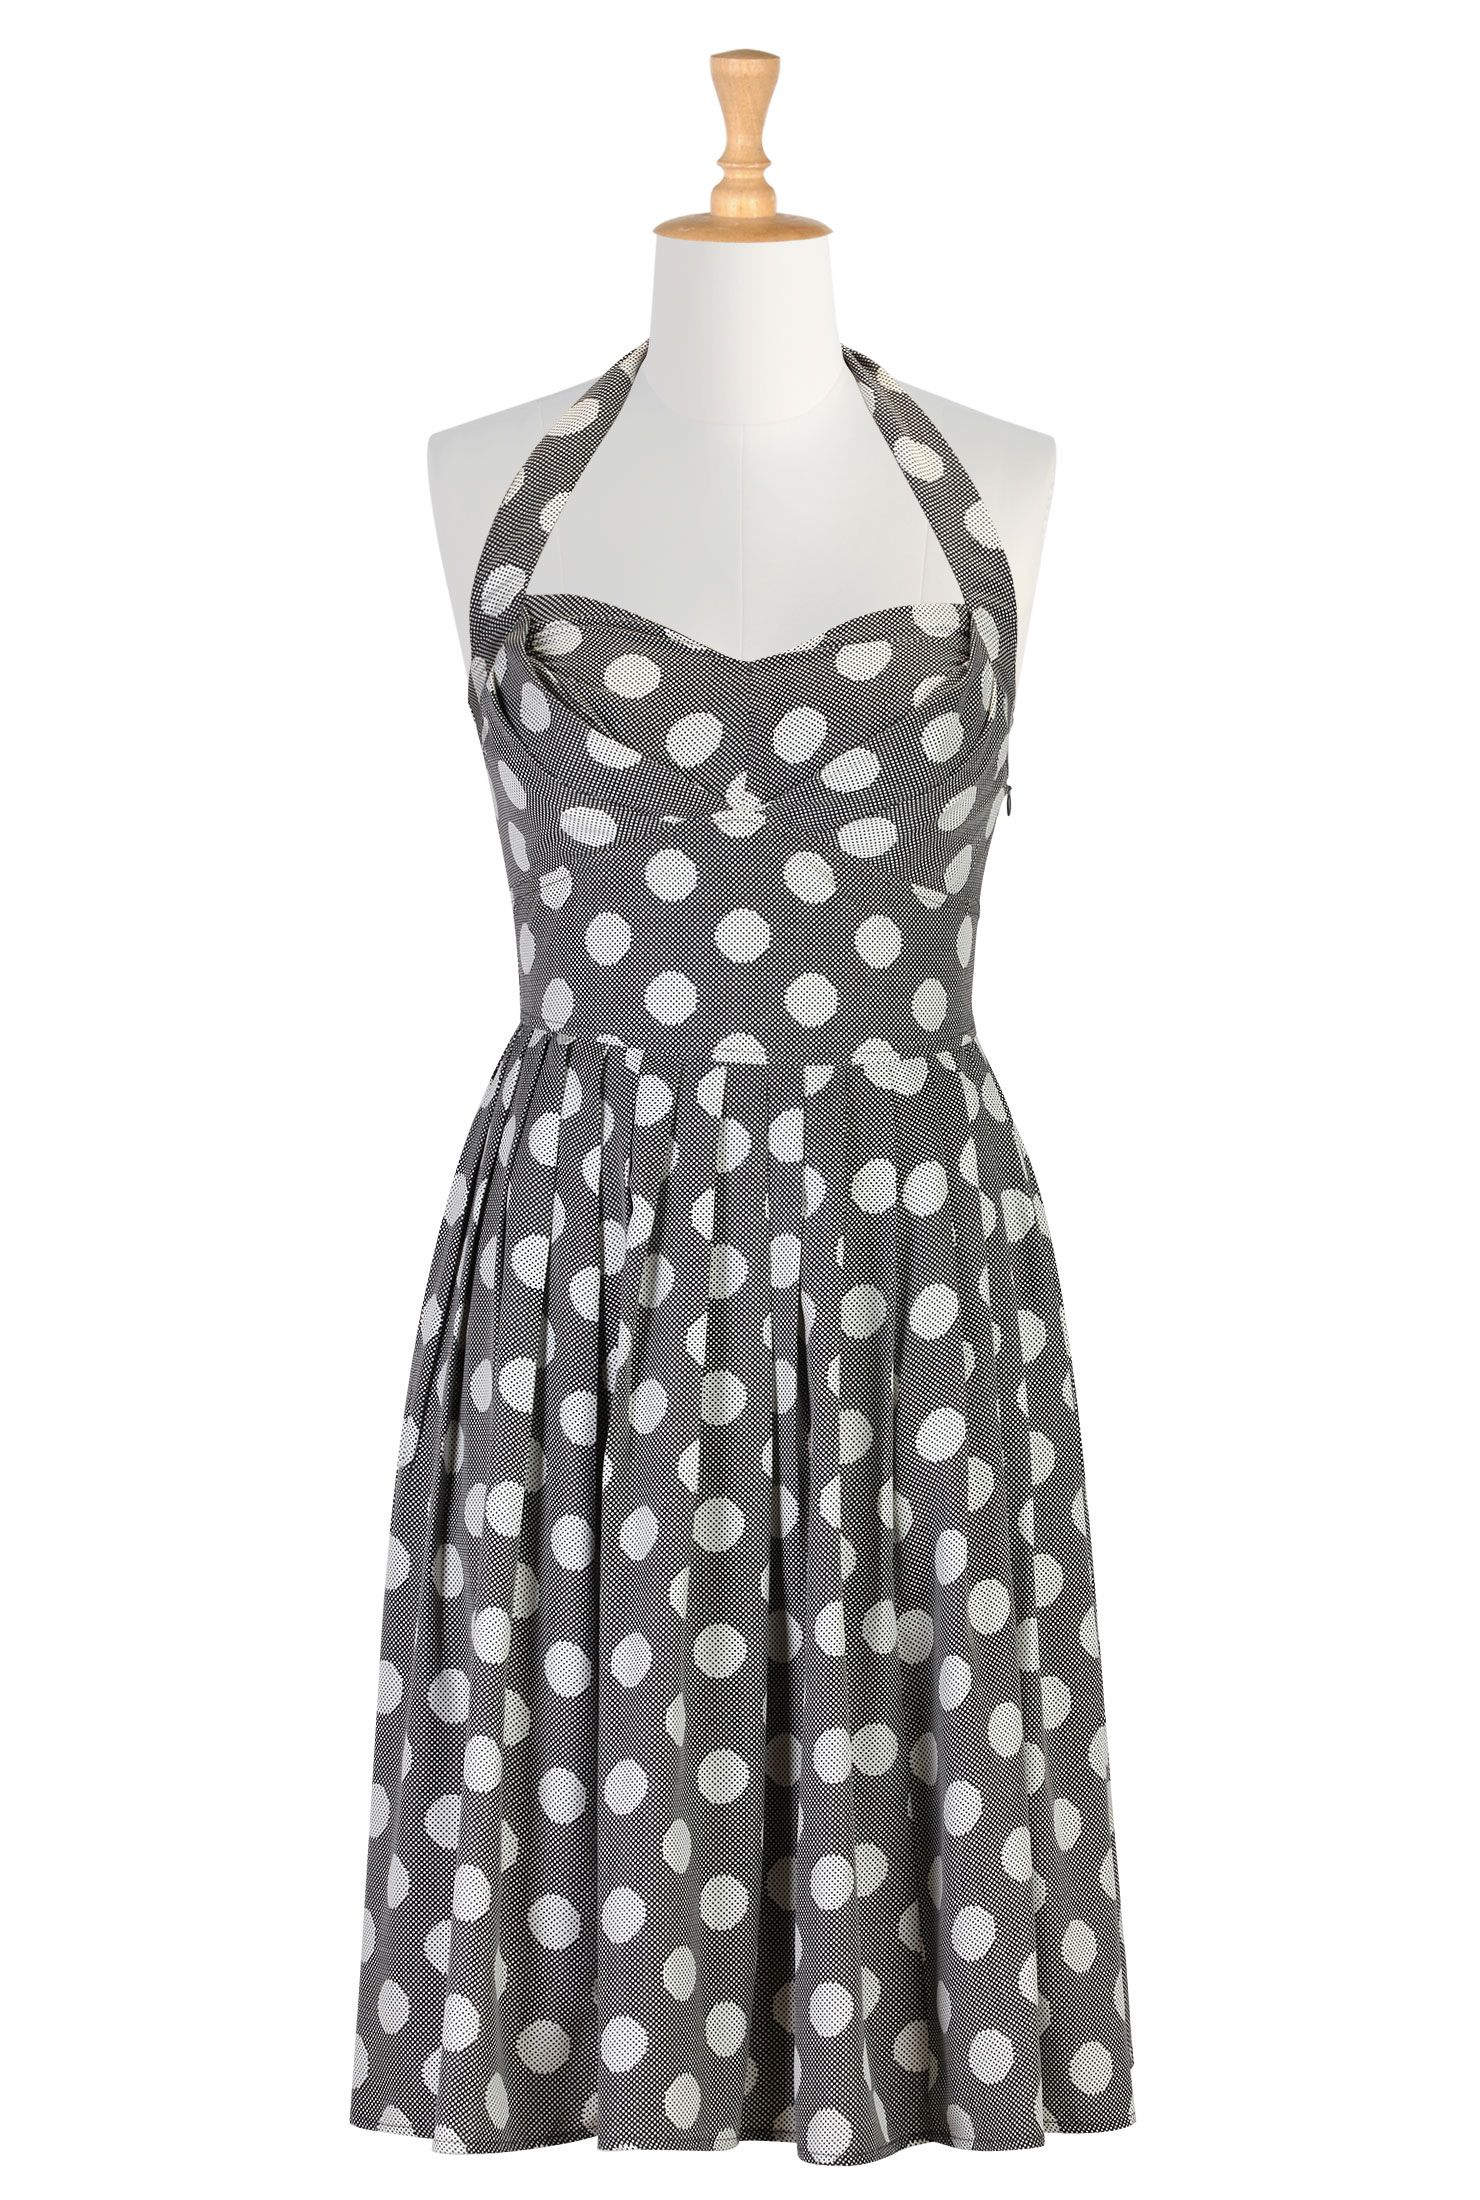 Black And White Dress , Black White Dresses Shop Online Womens ...